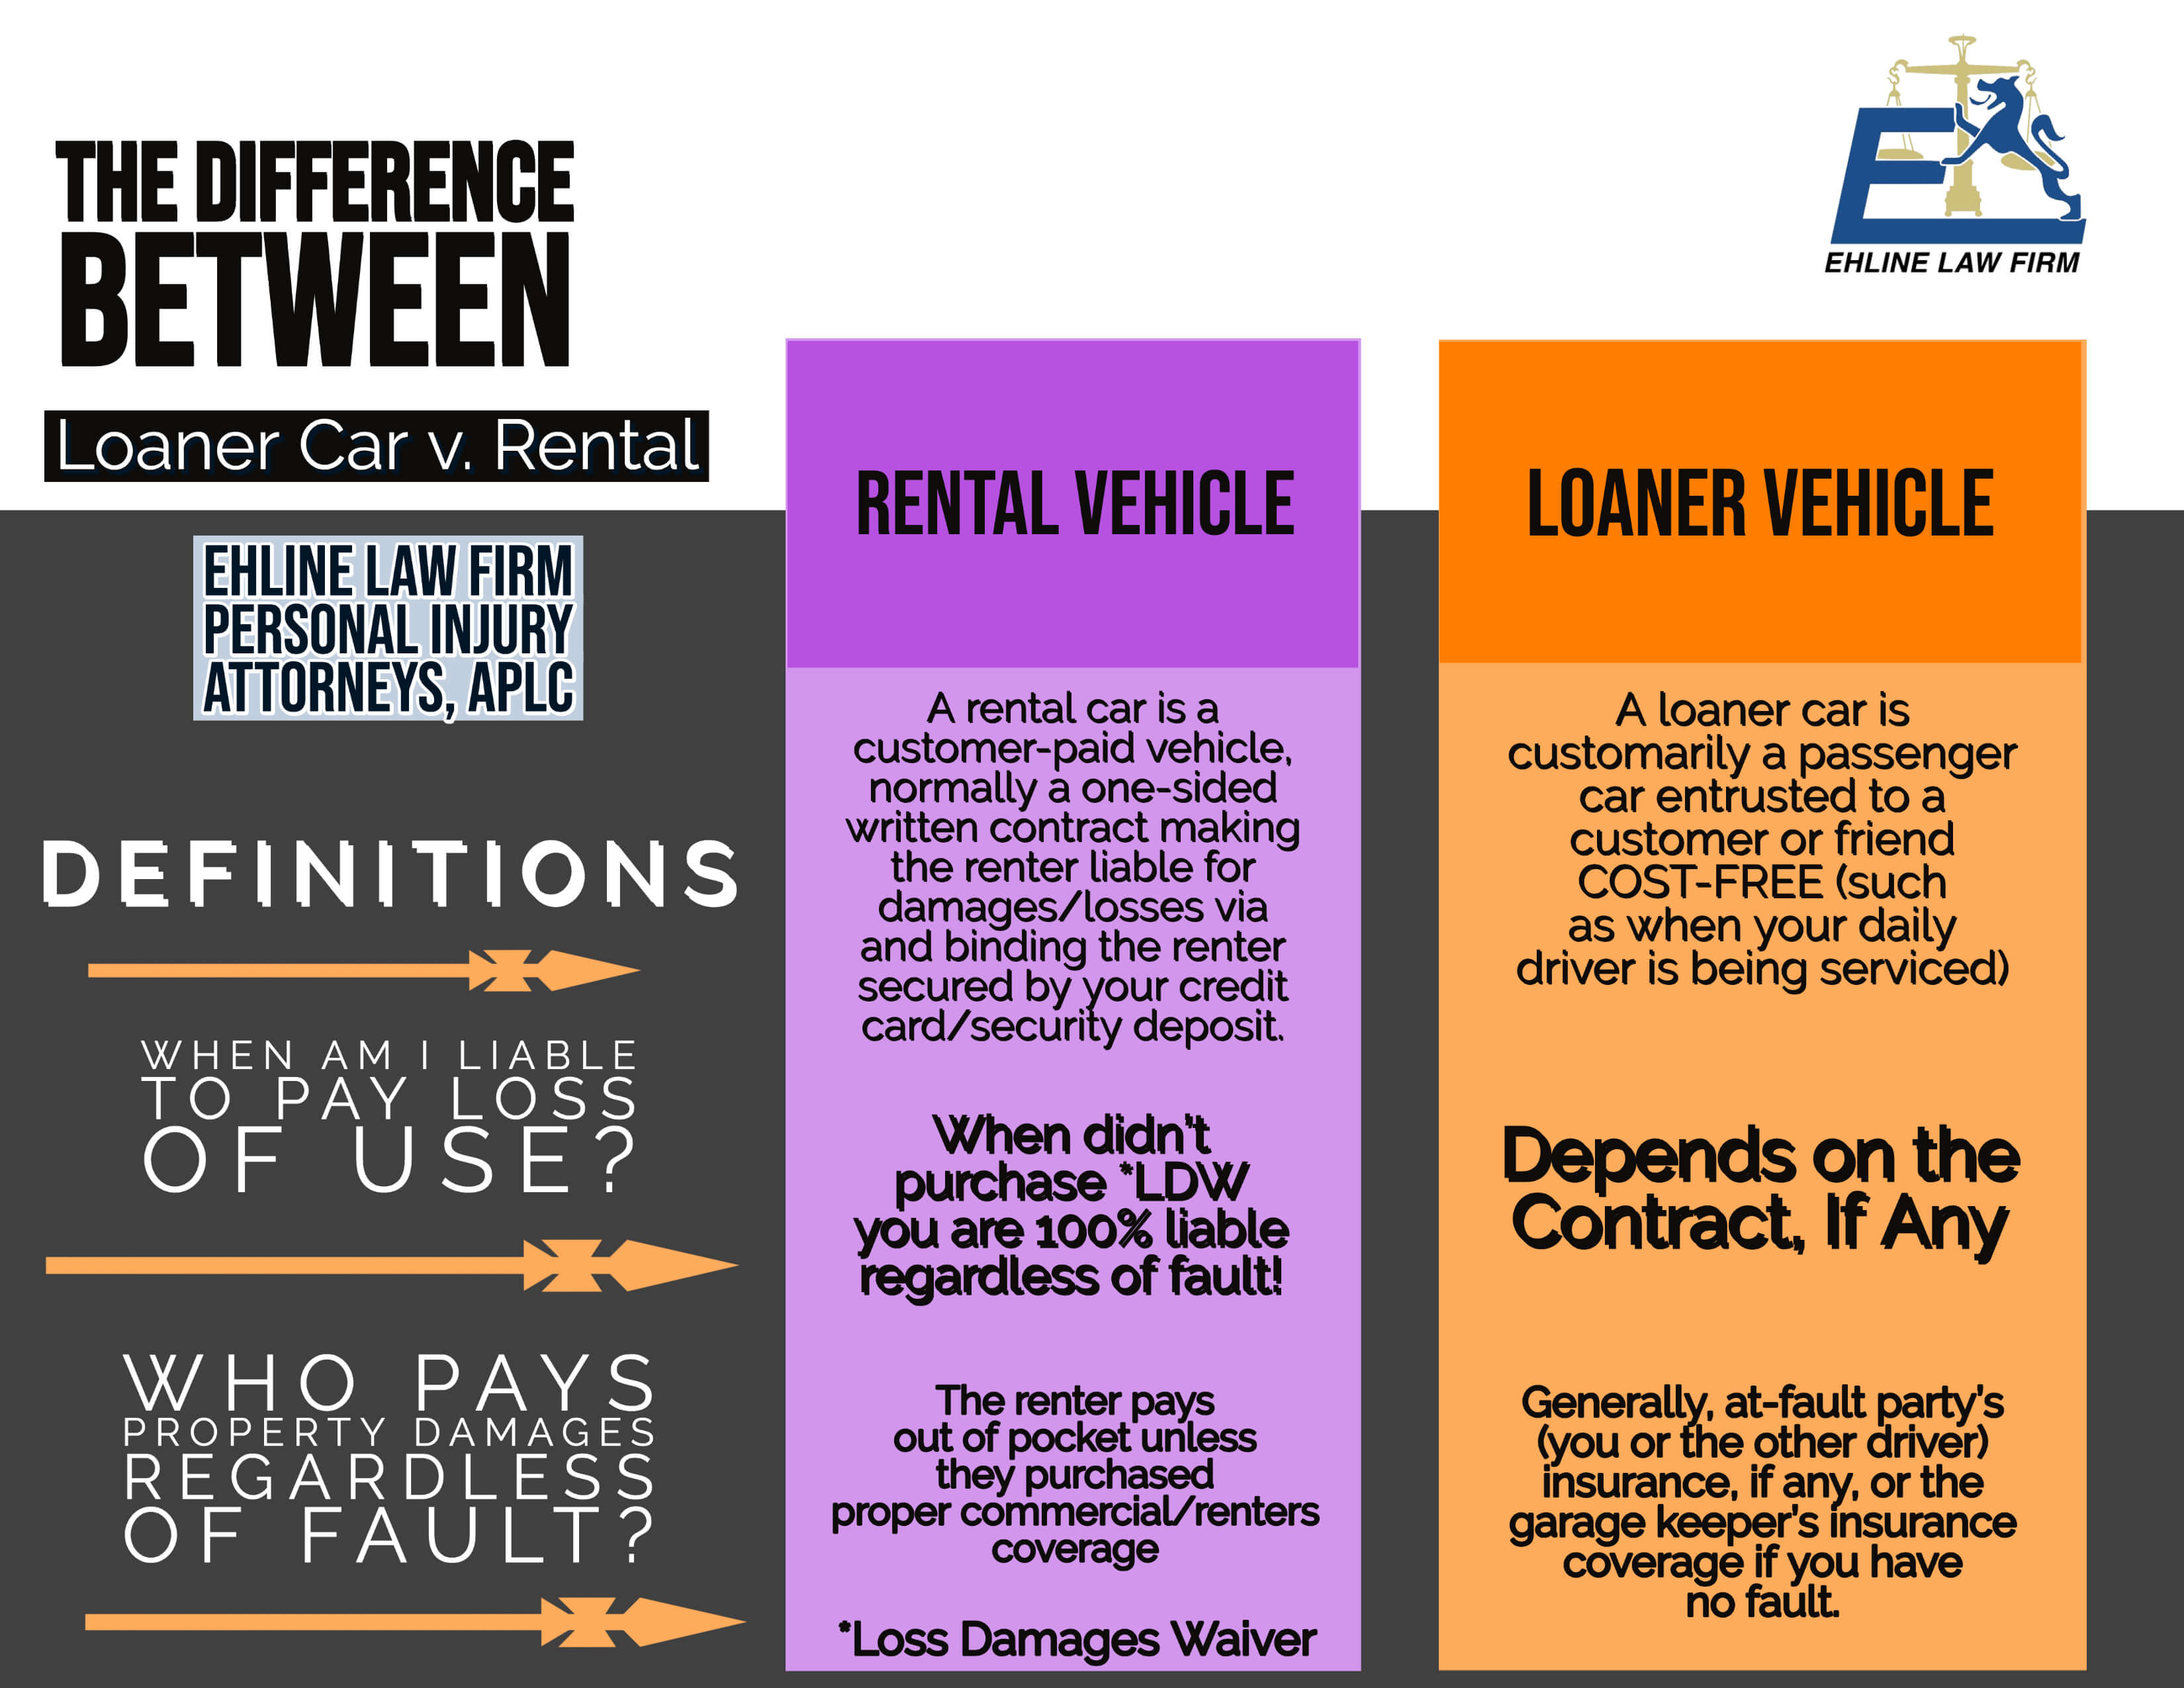 Differences Between Loaner Cars and Commercial Rental Cars